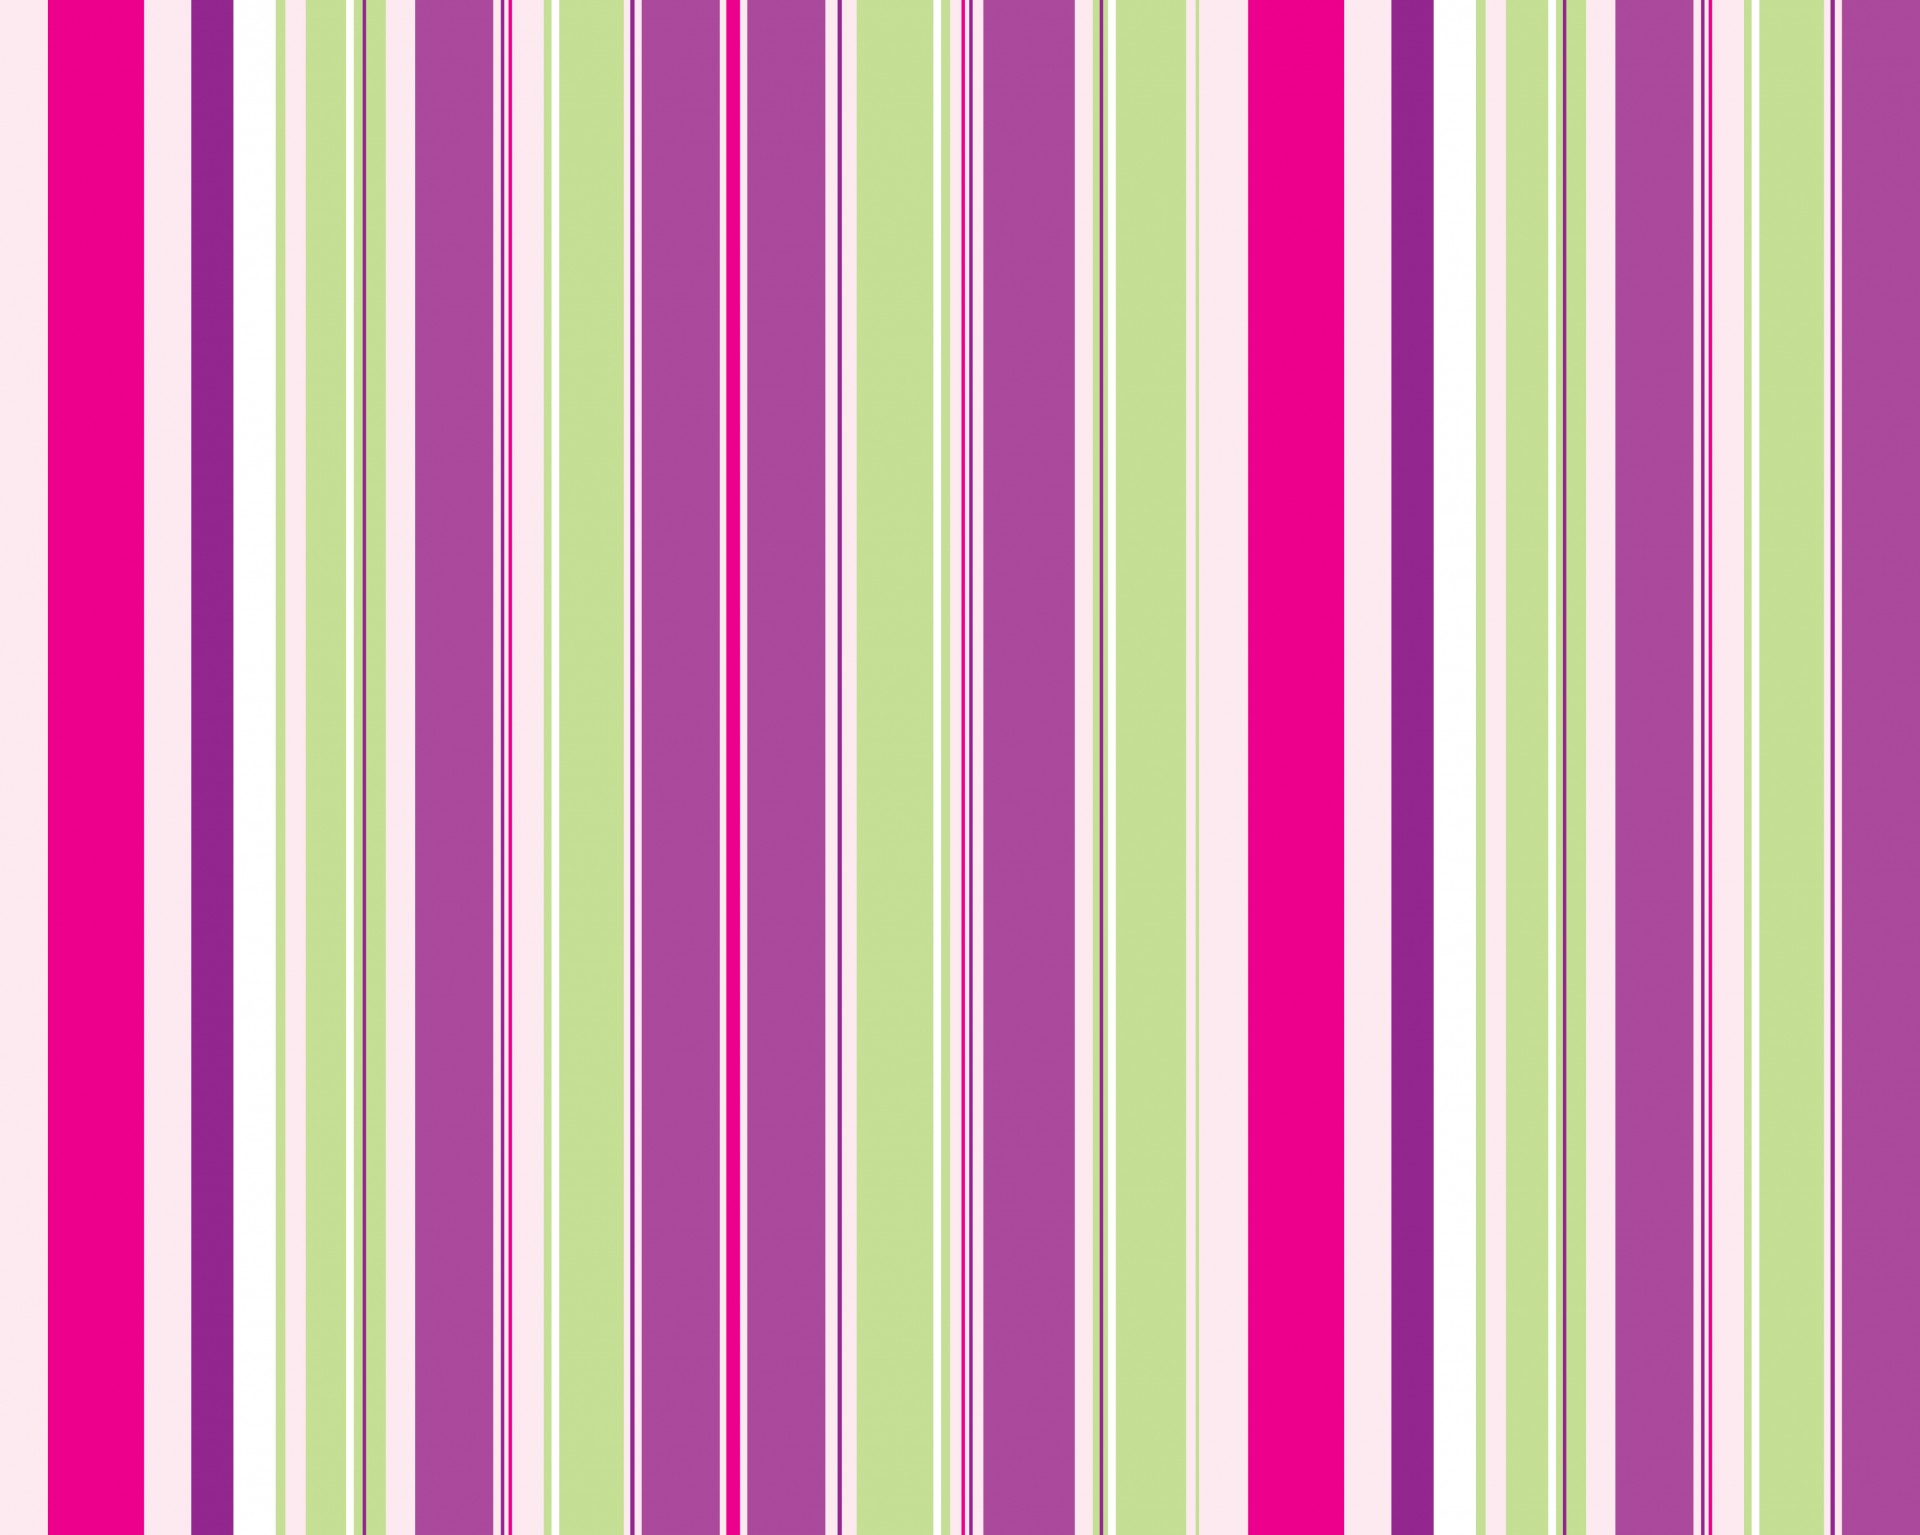 Stripes Background Colorful Stock Photo HD   Public Domain 1920x1535